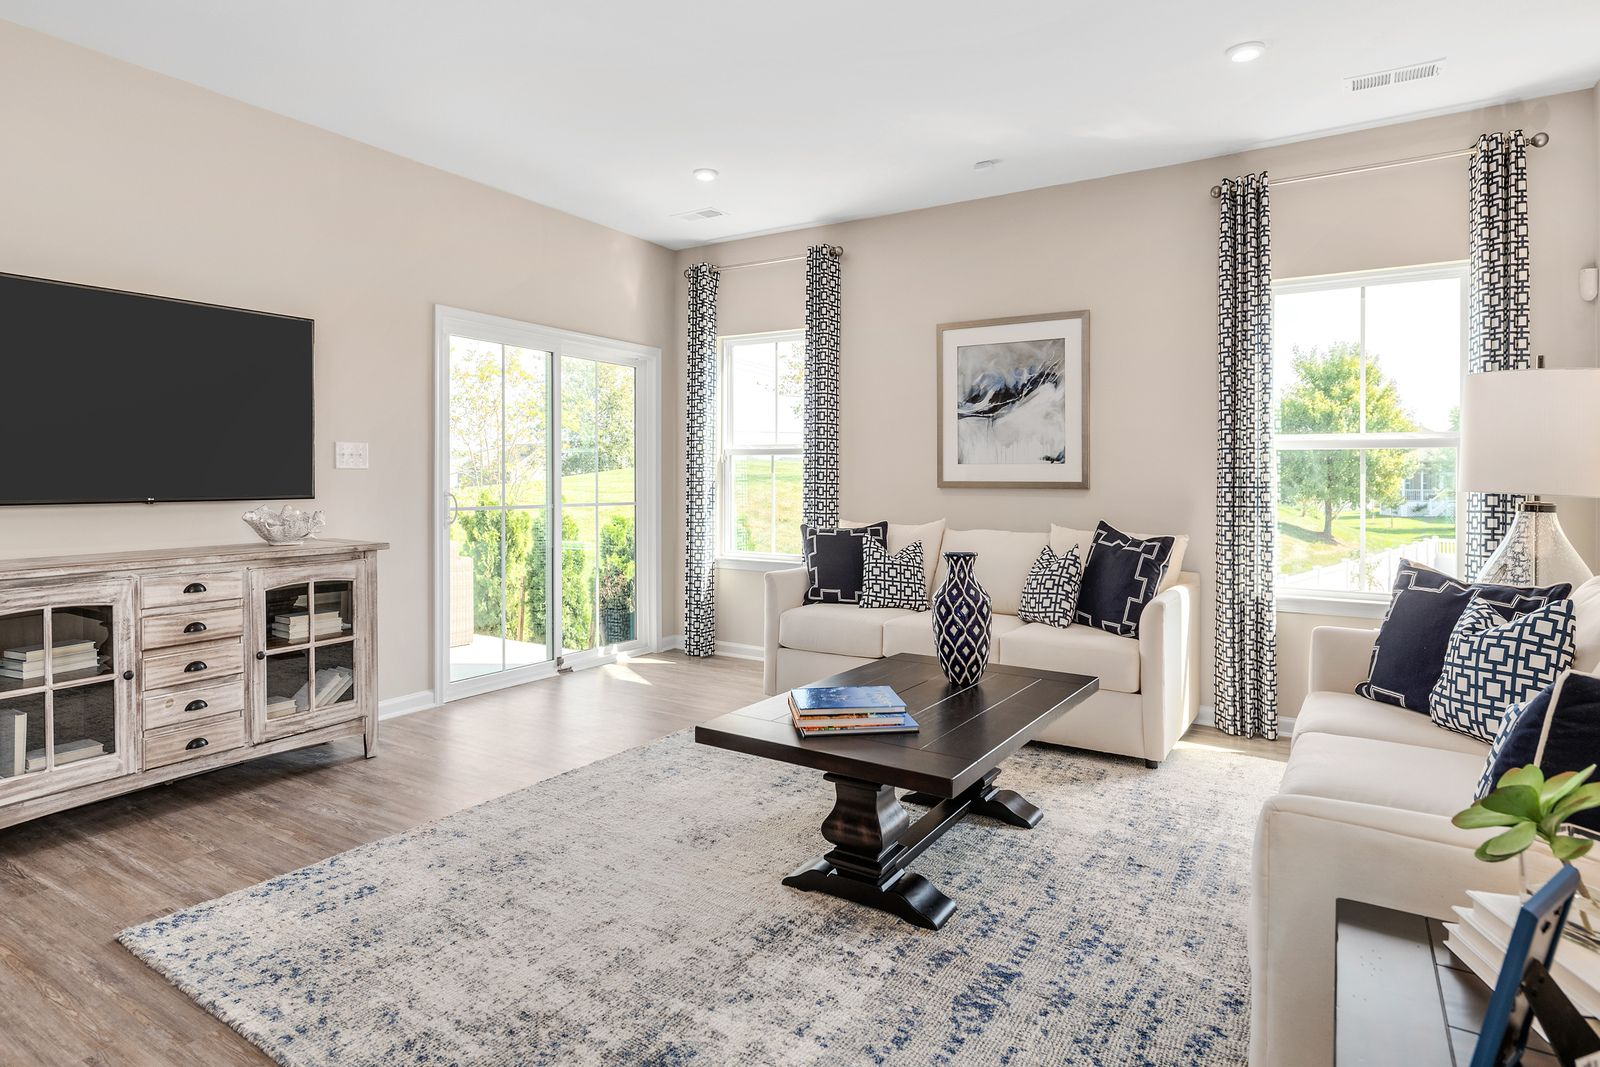 Living Area featured in the Palladio Ranch By Ryan Homes in Chicago, IL